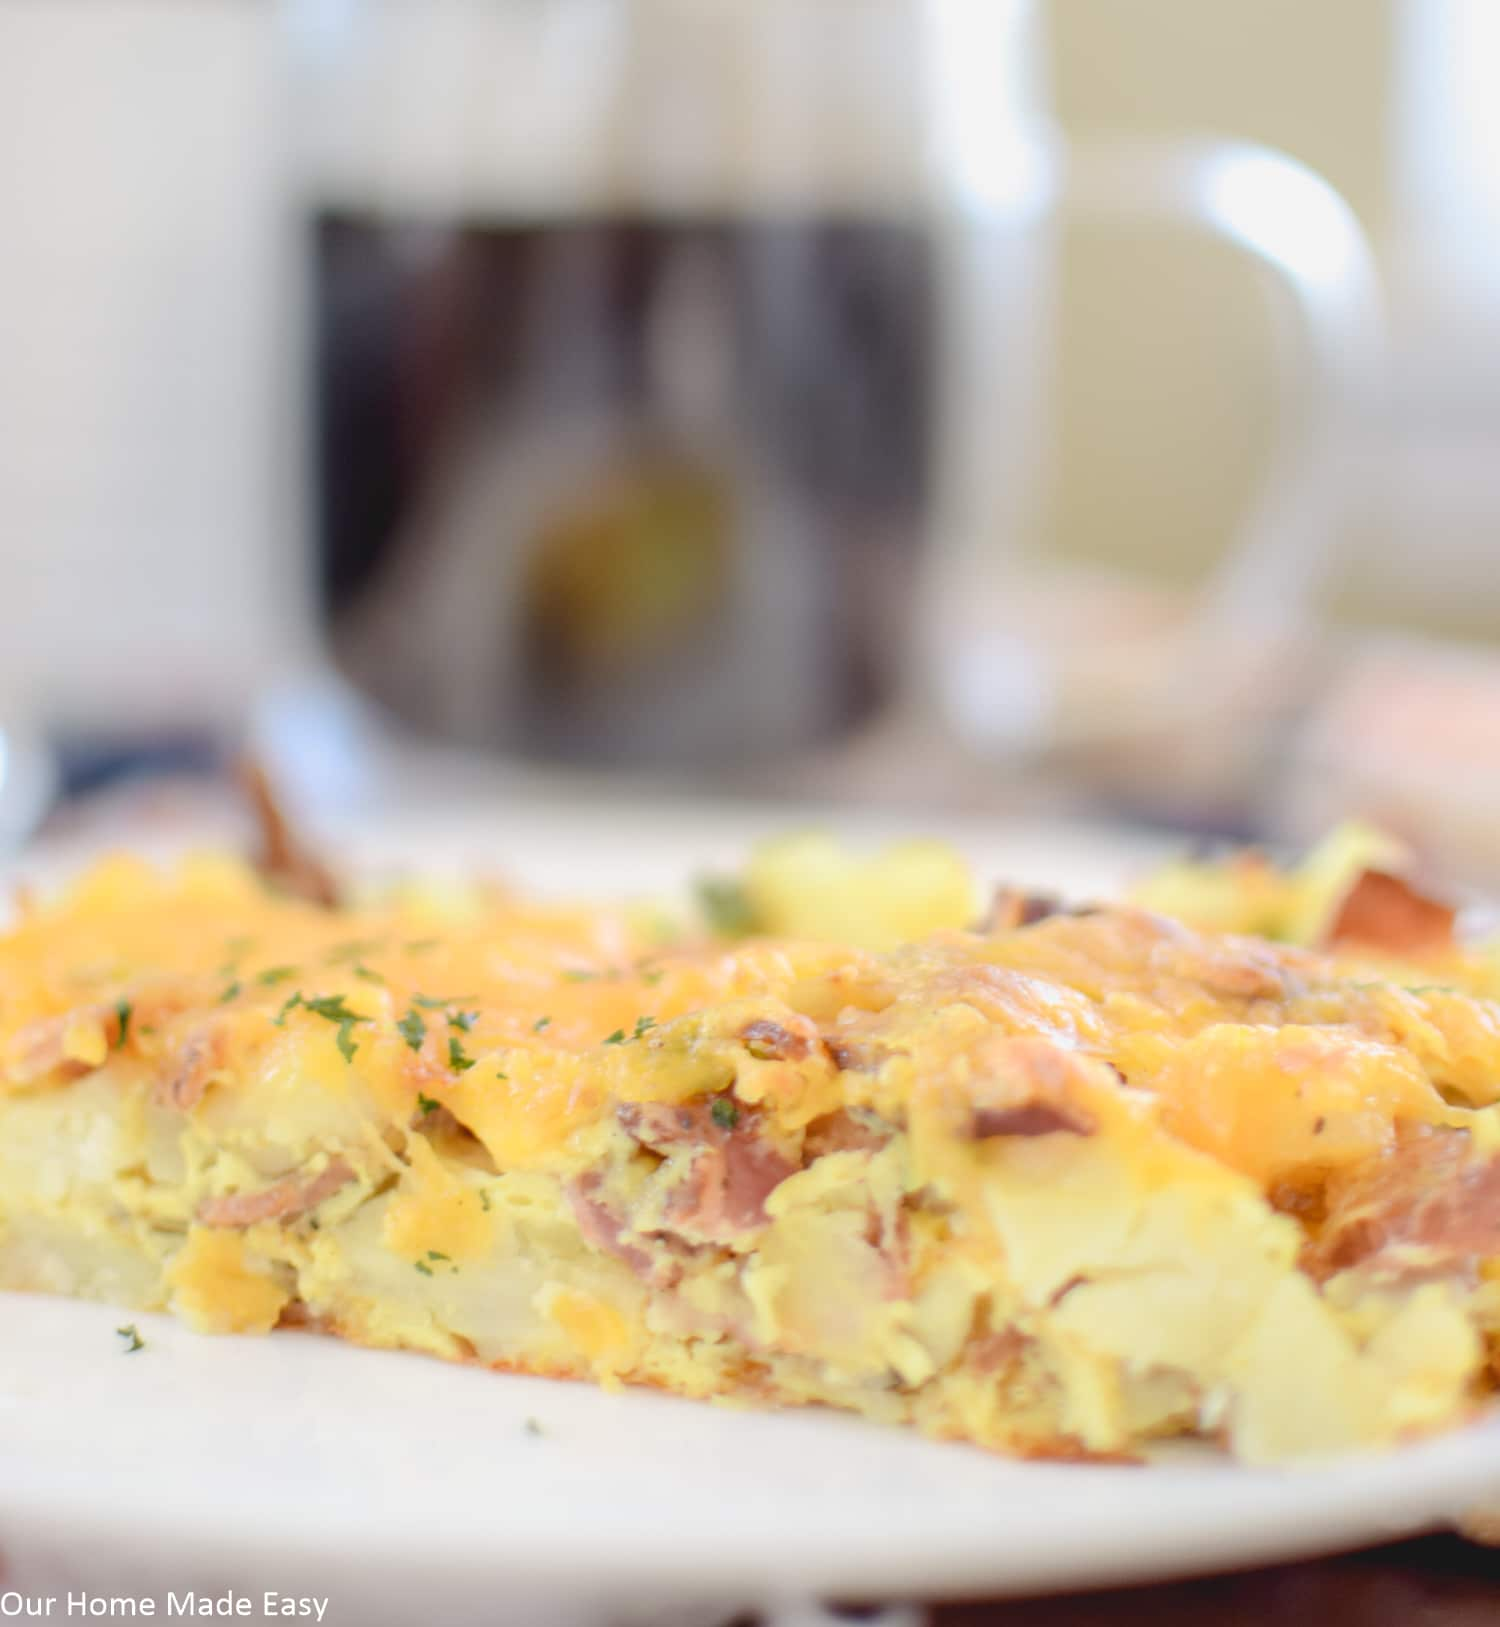 layers of cheese and fluffy eggs with bacon and sausage is a simple breakfast casserole